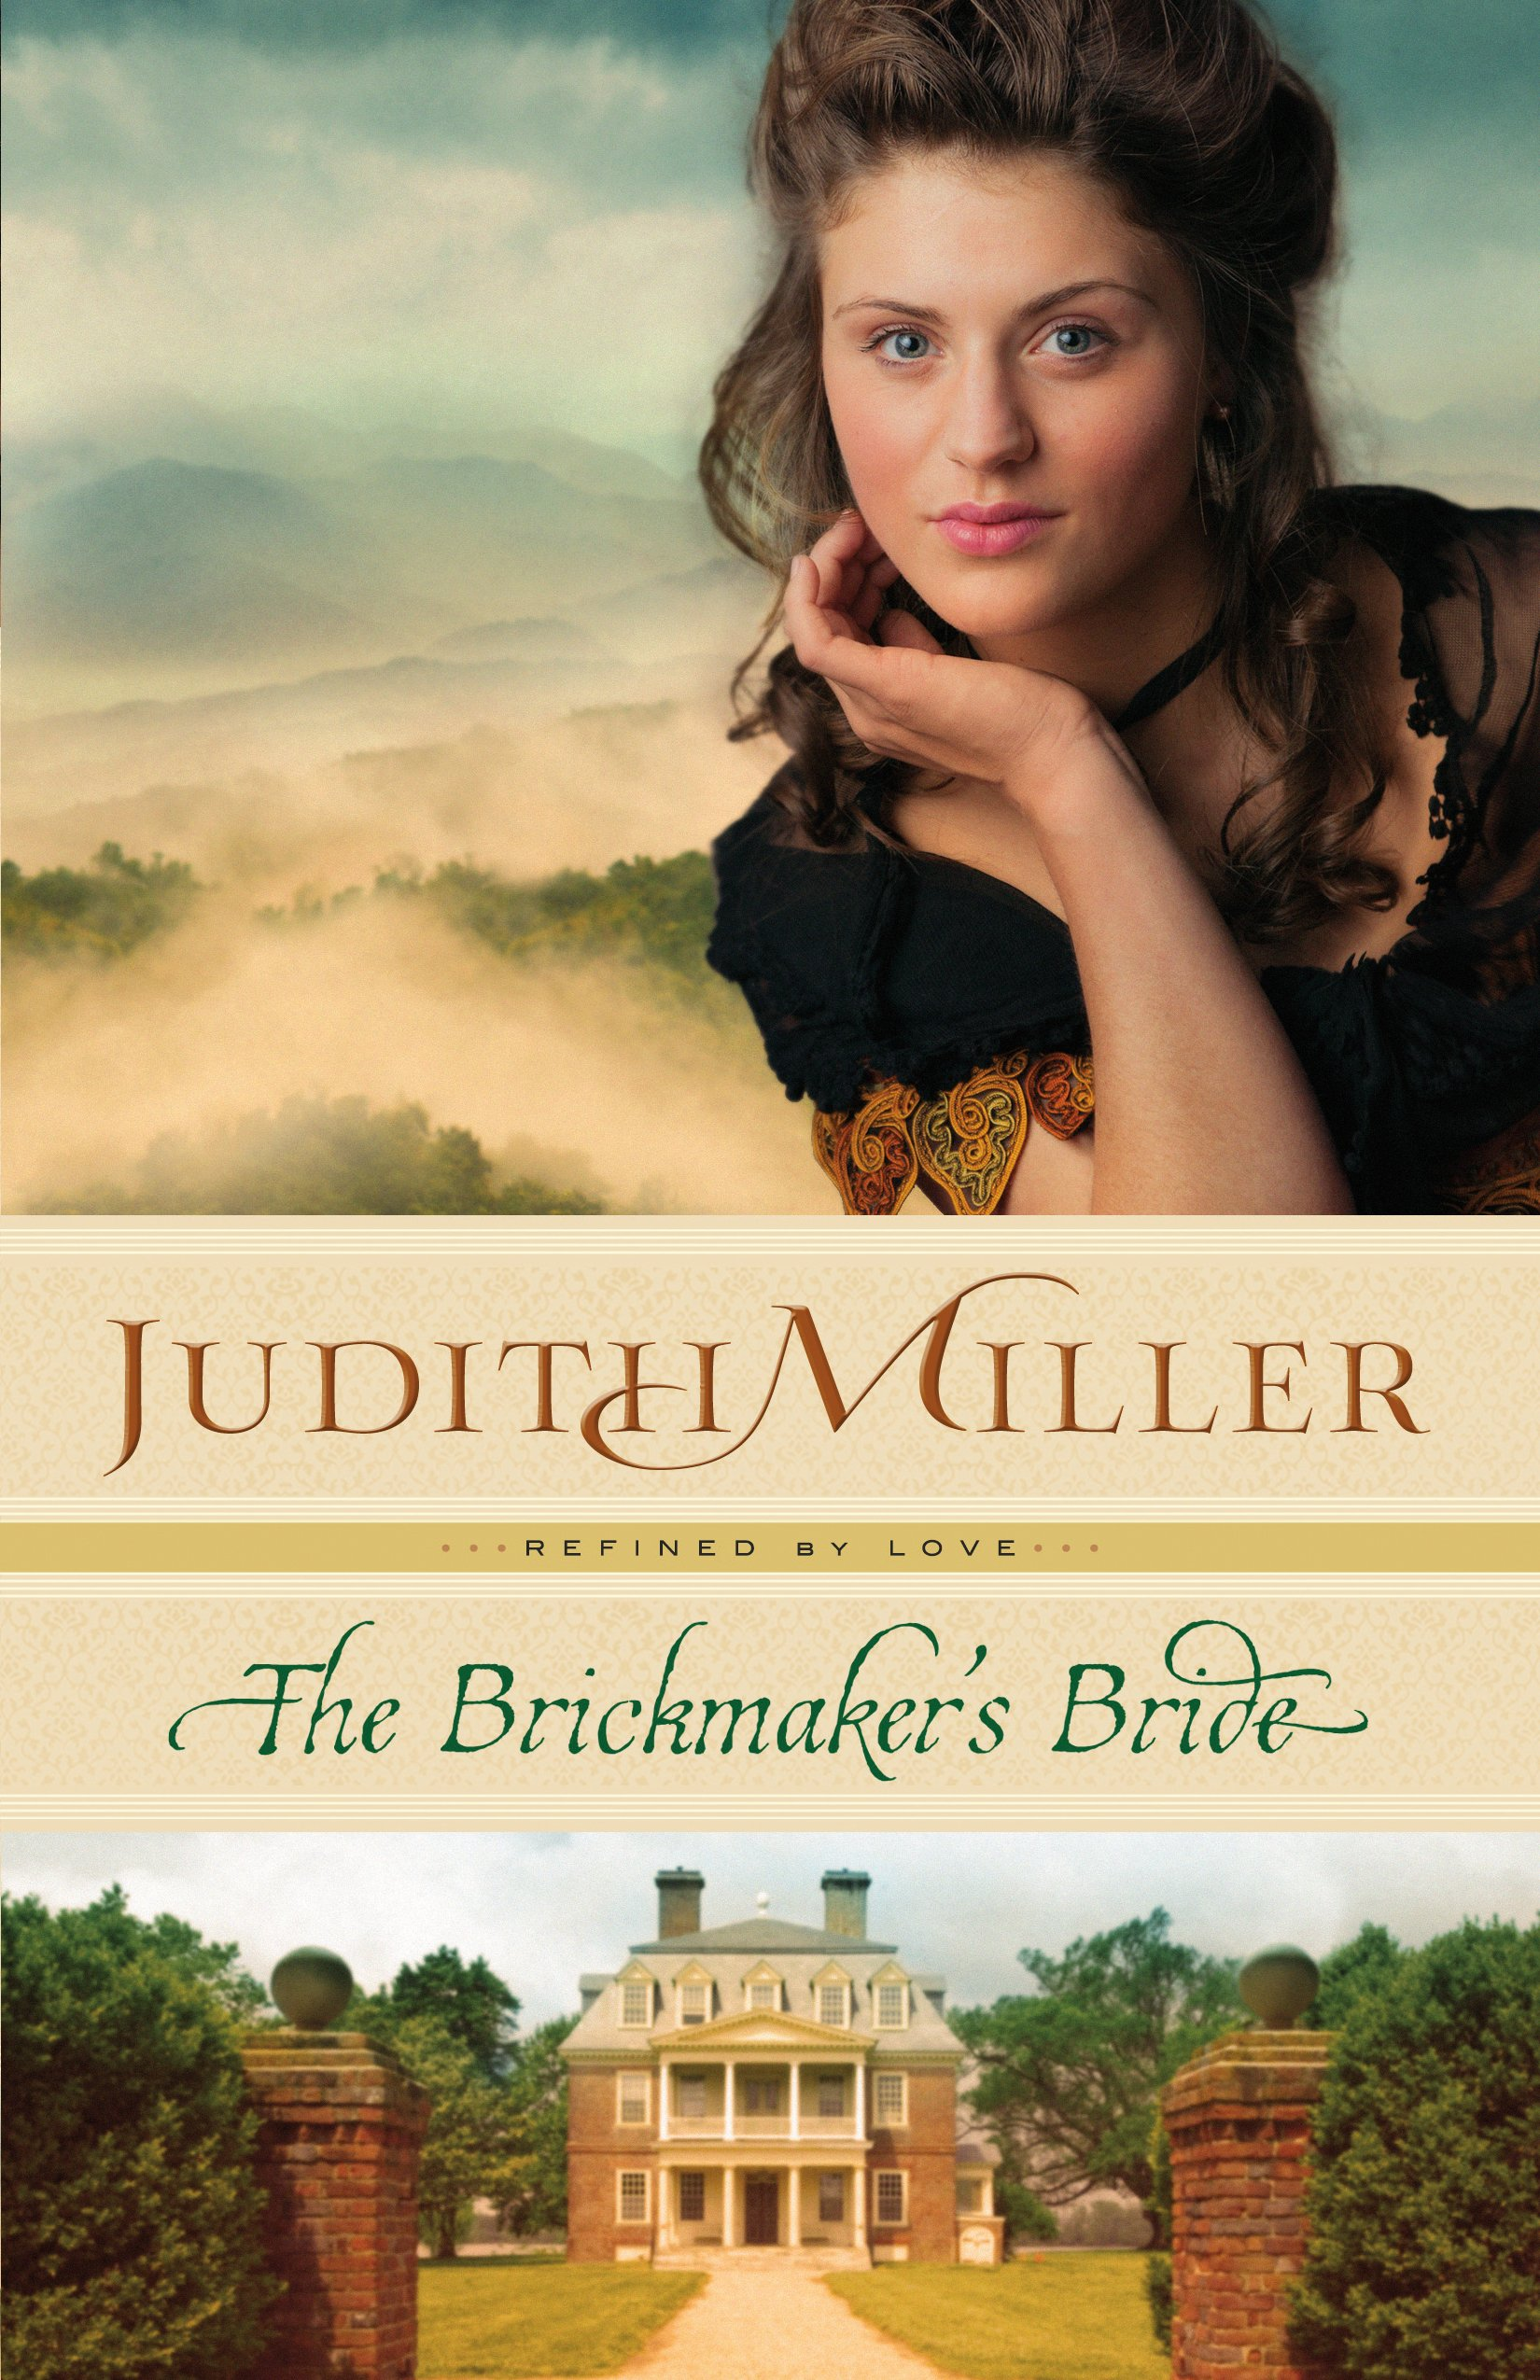 The Brickmaker's Bride - Judith McCoy Miller